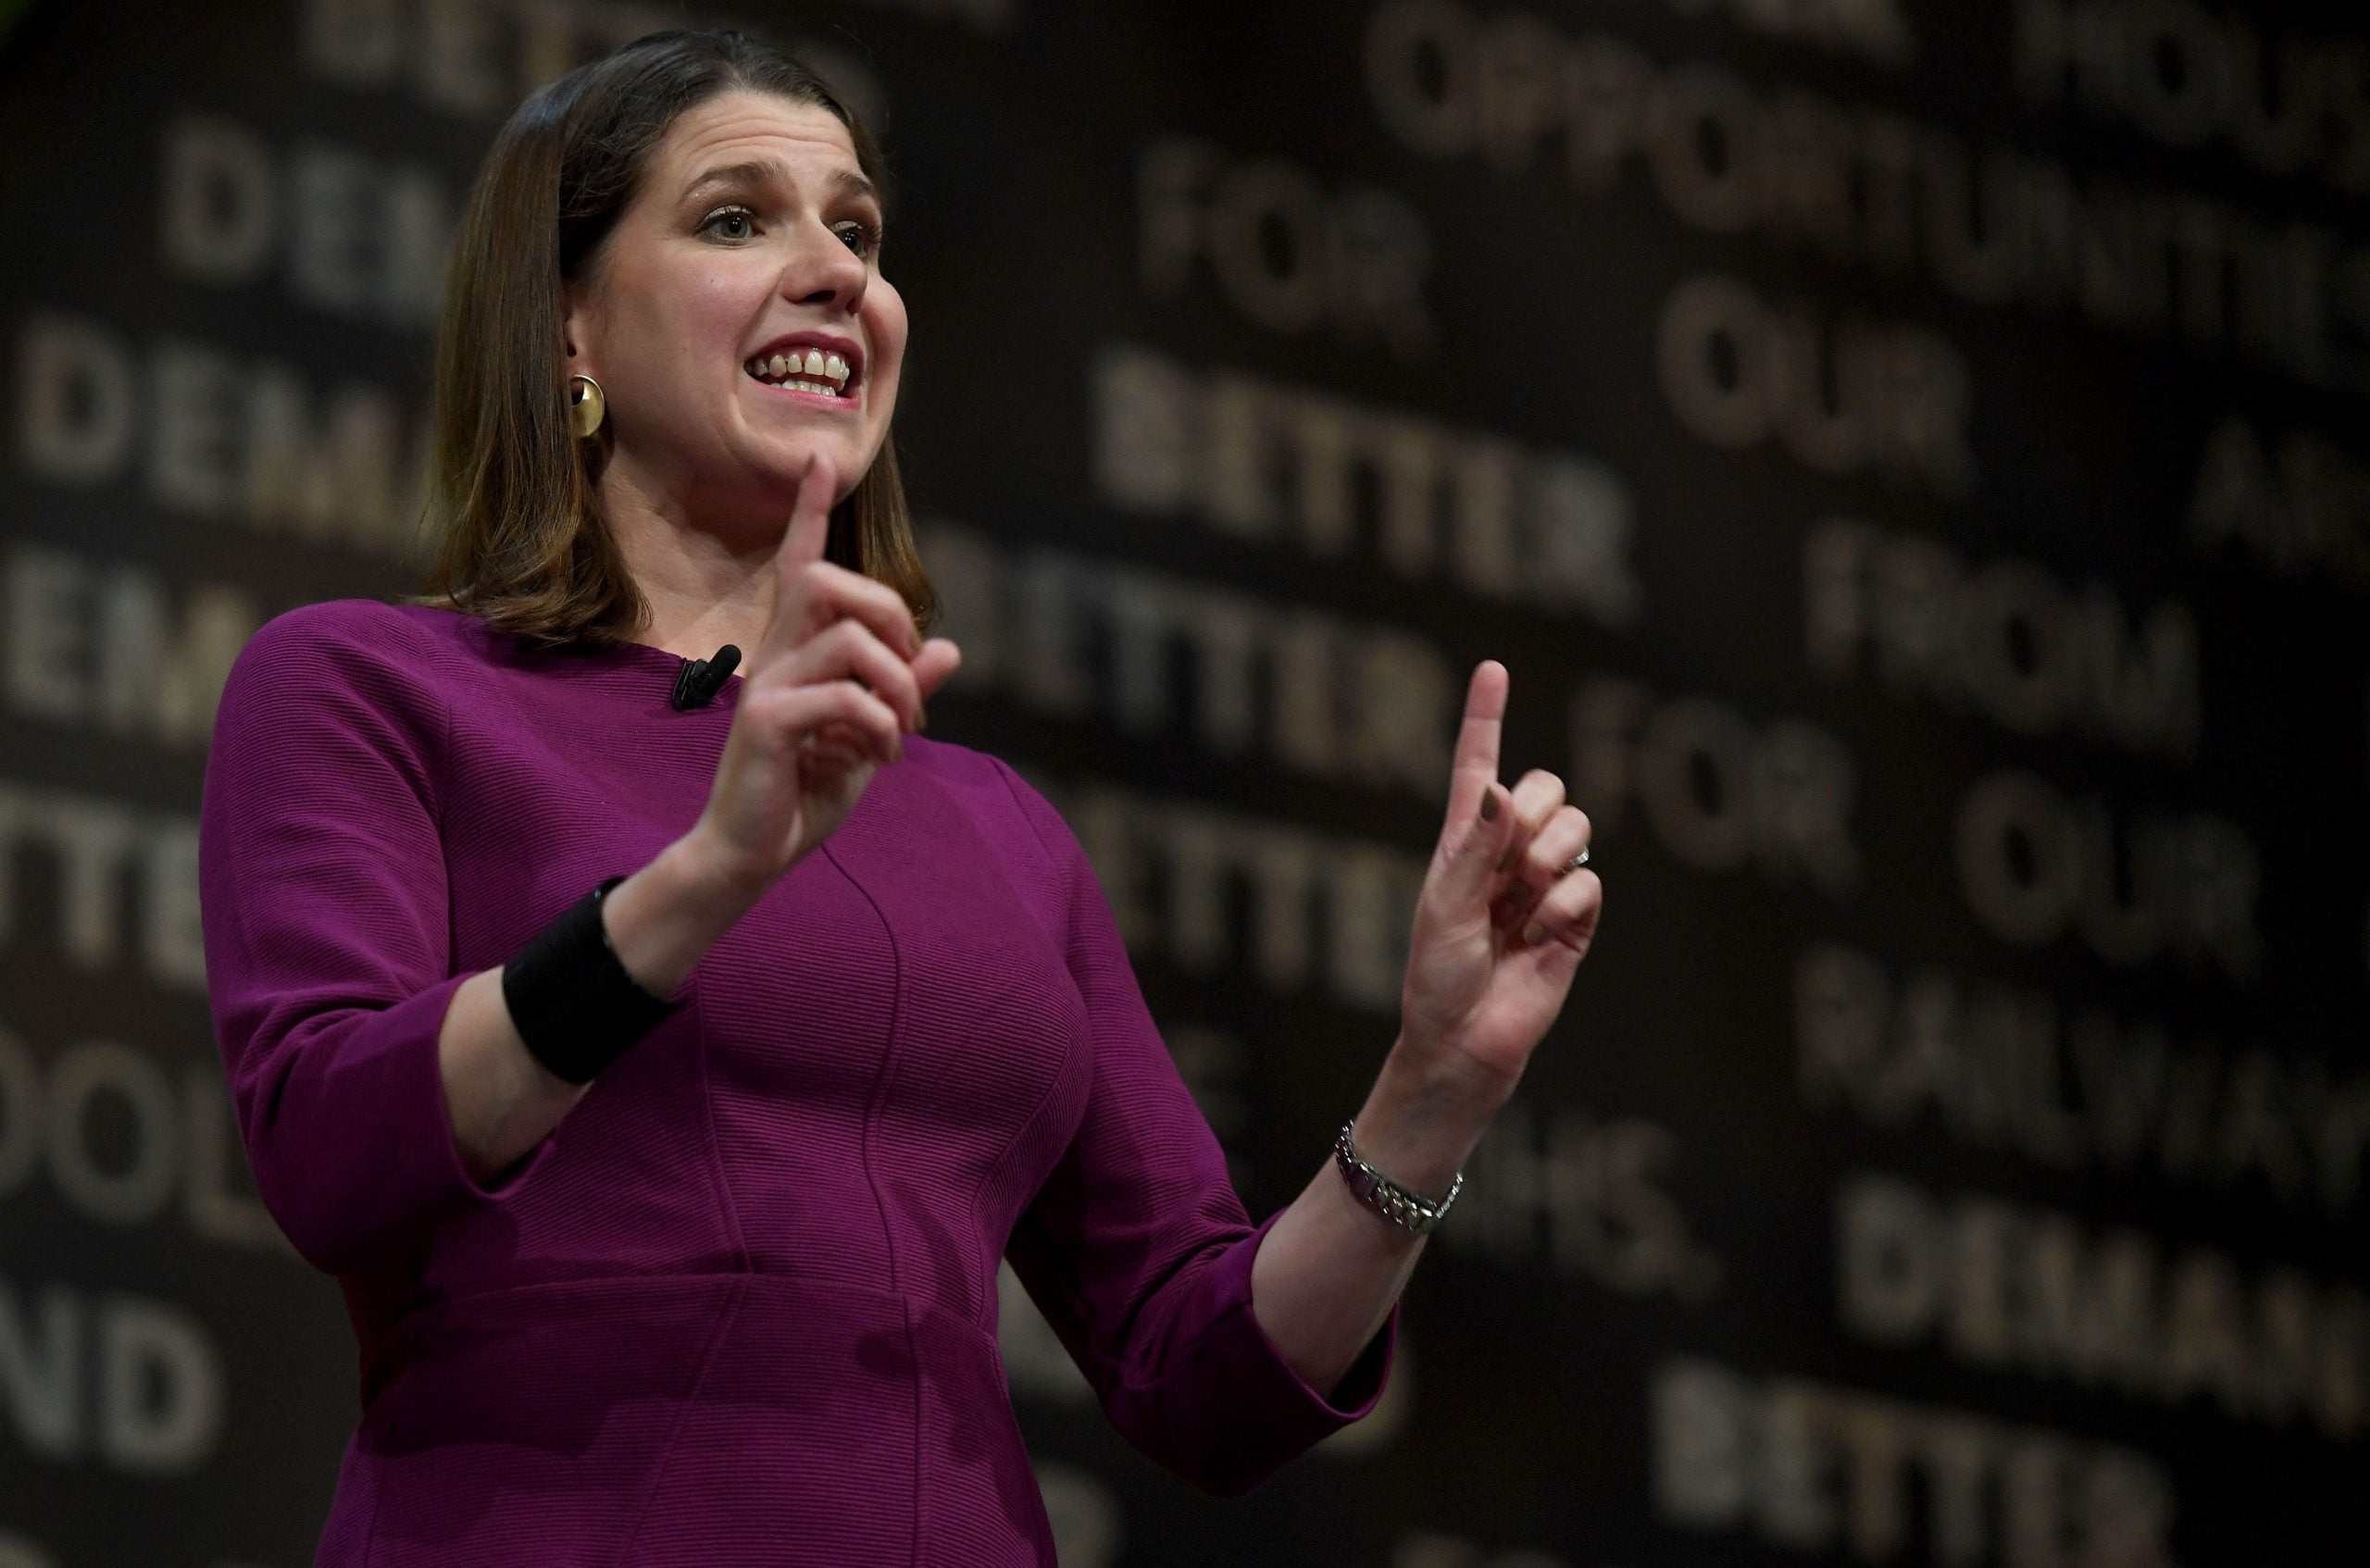 For Jo Swinson and the Liberal Democrats, ambition is the only option